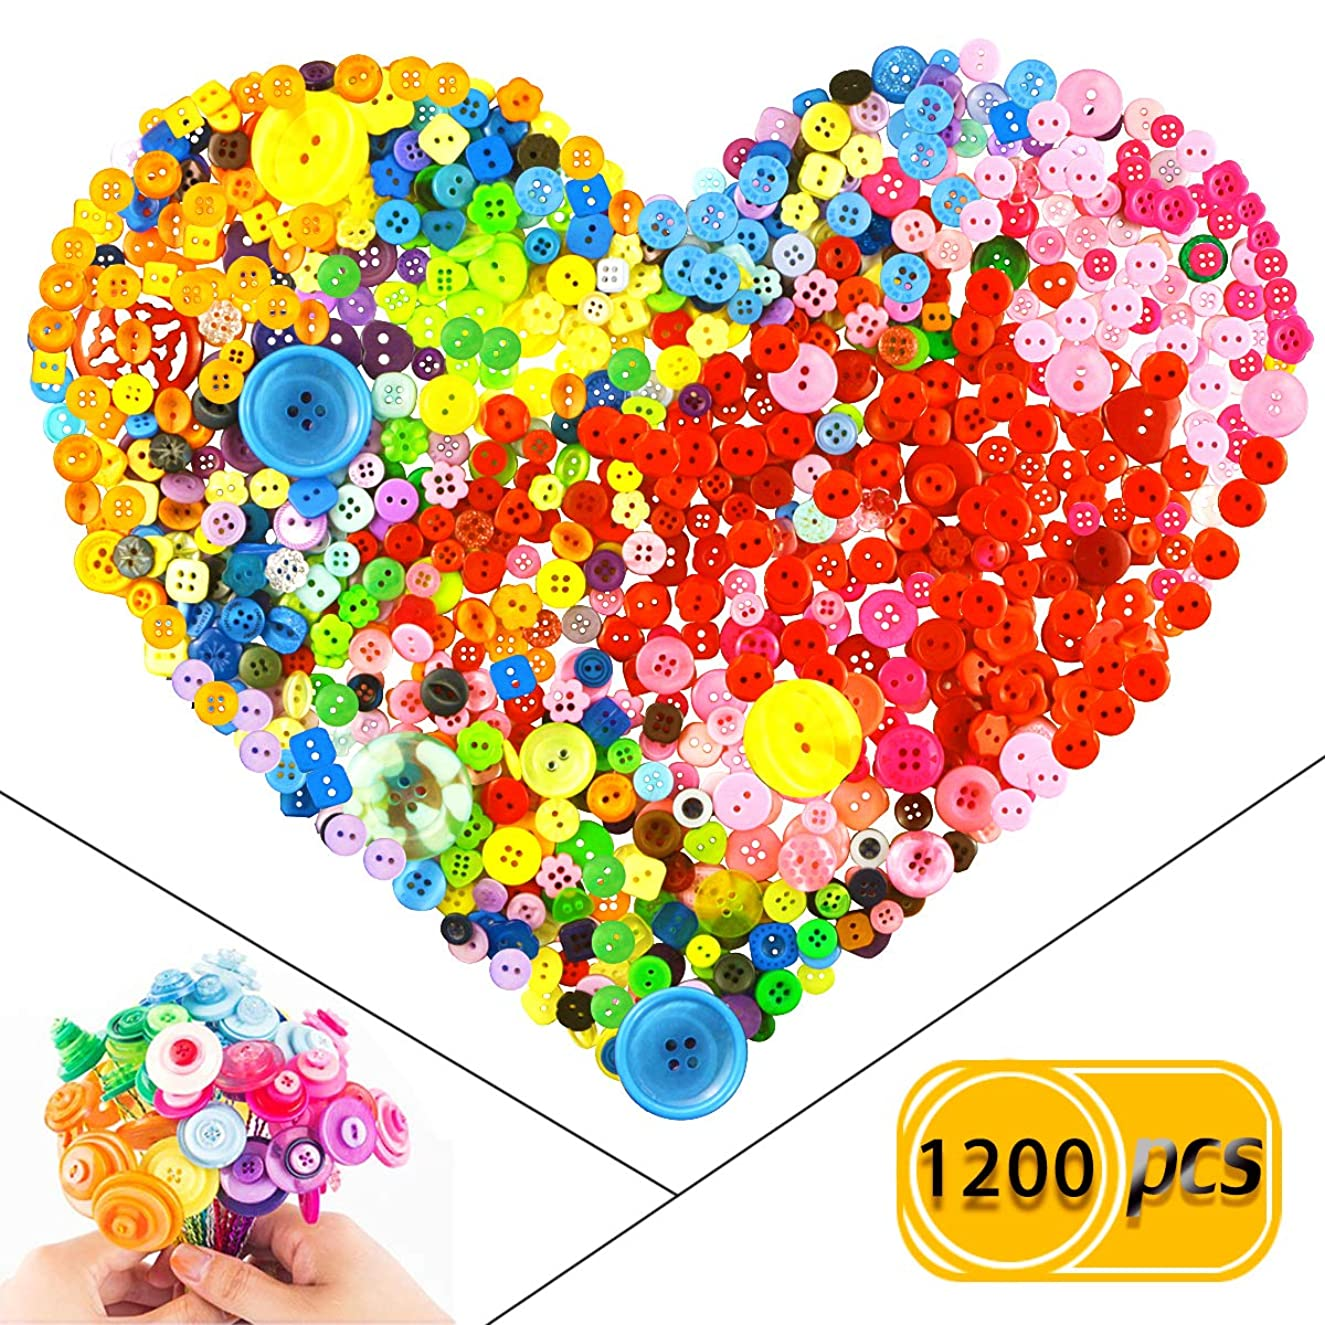 BcPowr 1200 Pcs Assorted Sizes Resin Buttons ,Mixed Color Round Craft Buttons for Sewing DIY Crafts,Children's Manual Button Painting